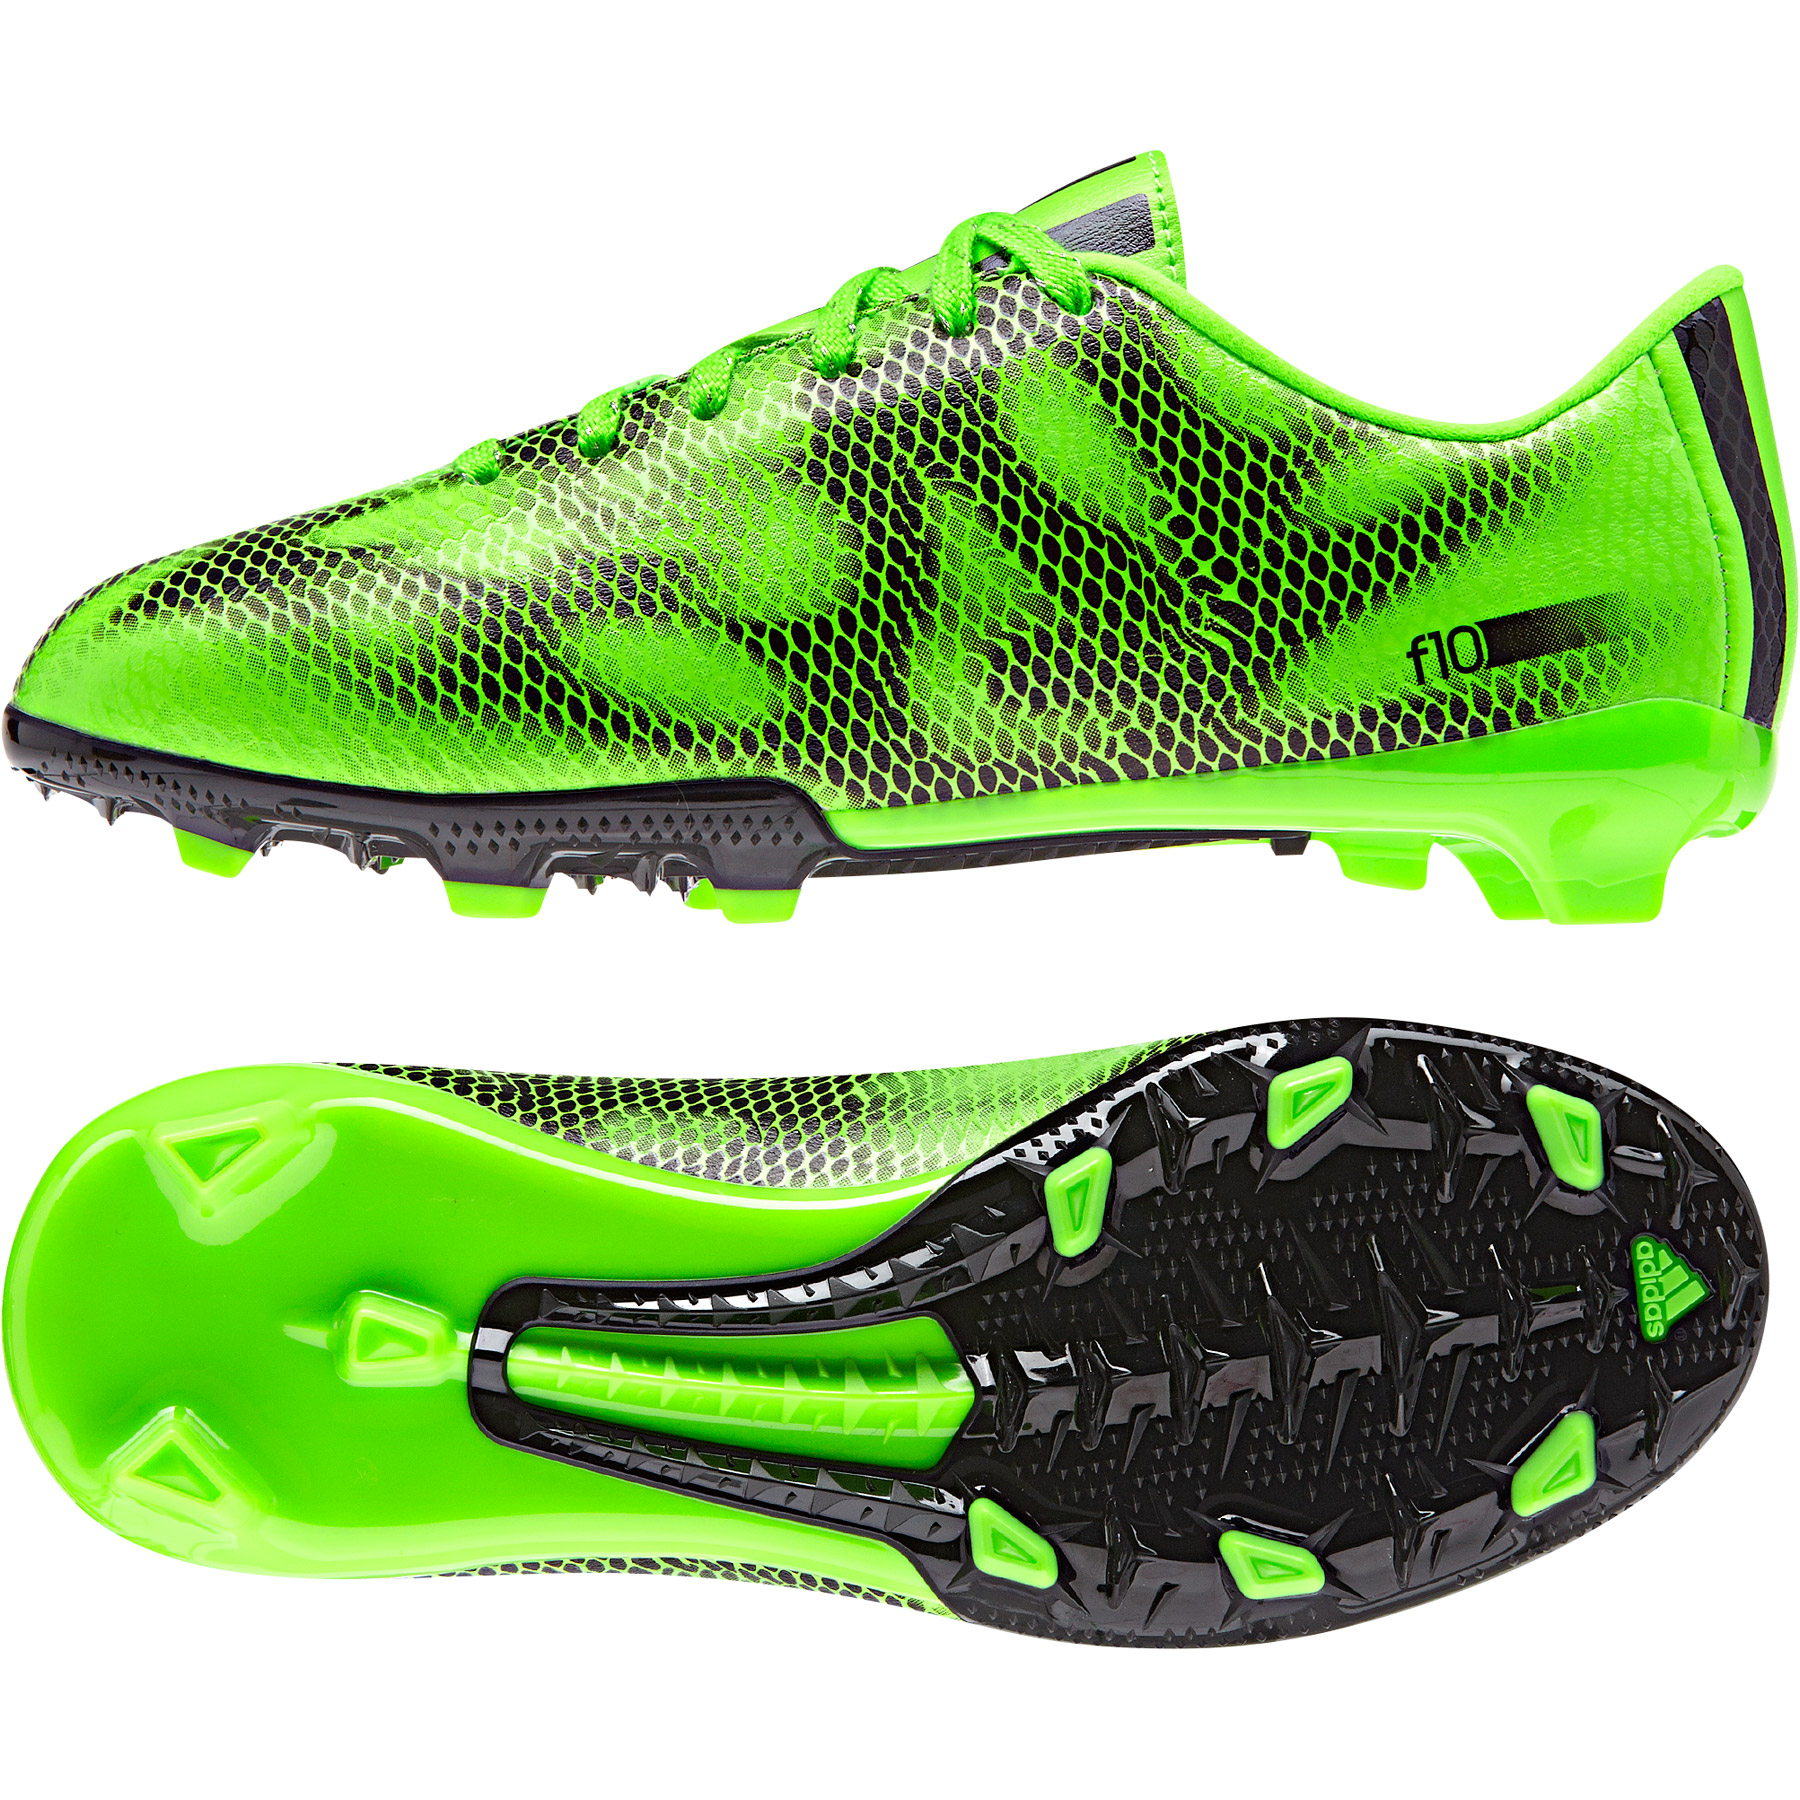 Adidas F10 Firm Ground Football Boots  Kids Green